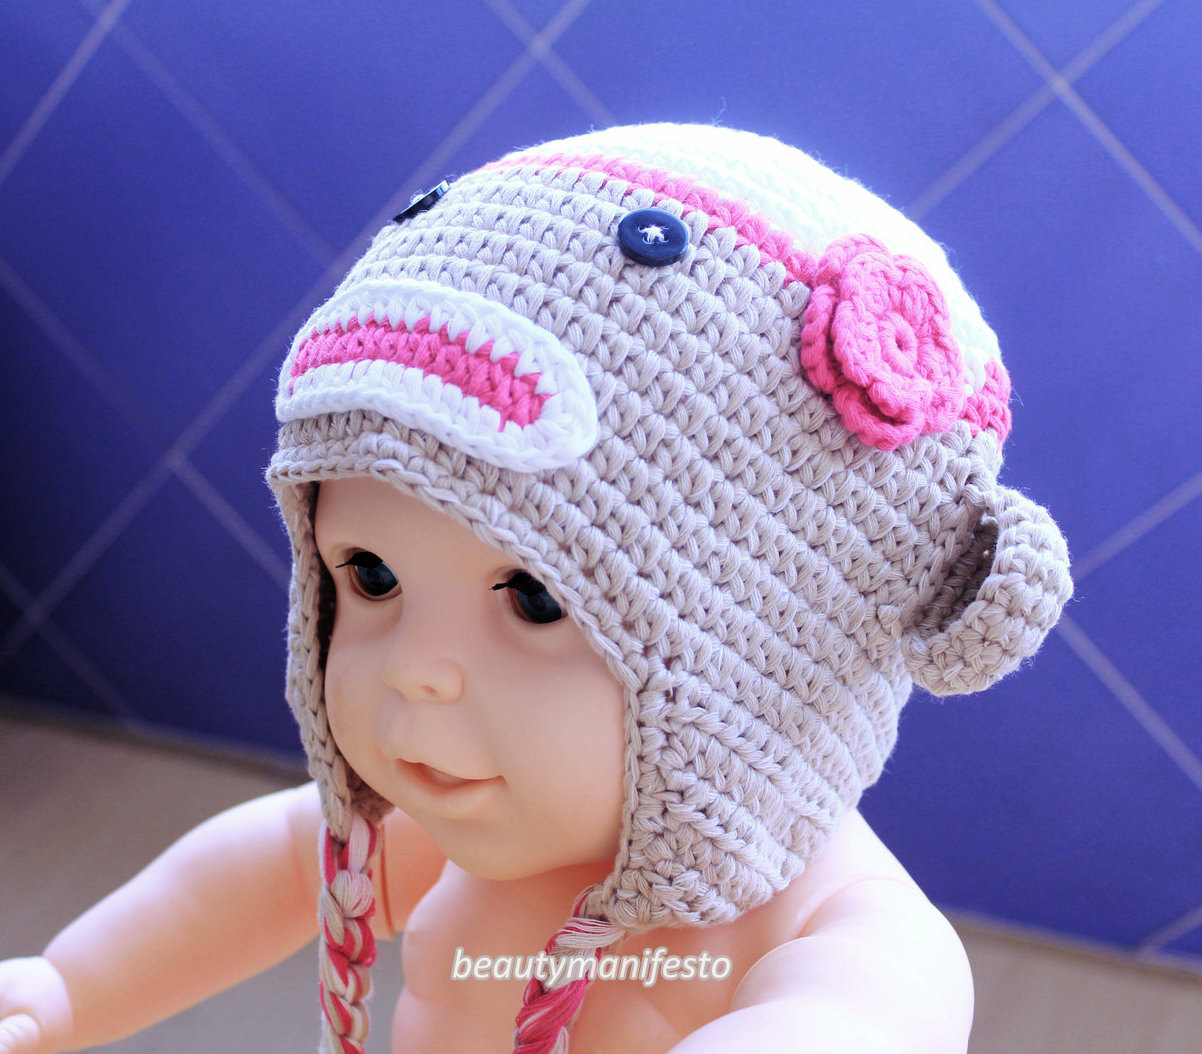 Gray and Pink Sock Monkey Hat,Baby Girl Winter Hat,Crochet Hat, 0 to 3  Month Photo Prop,Toddler Sock Monkey Hat